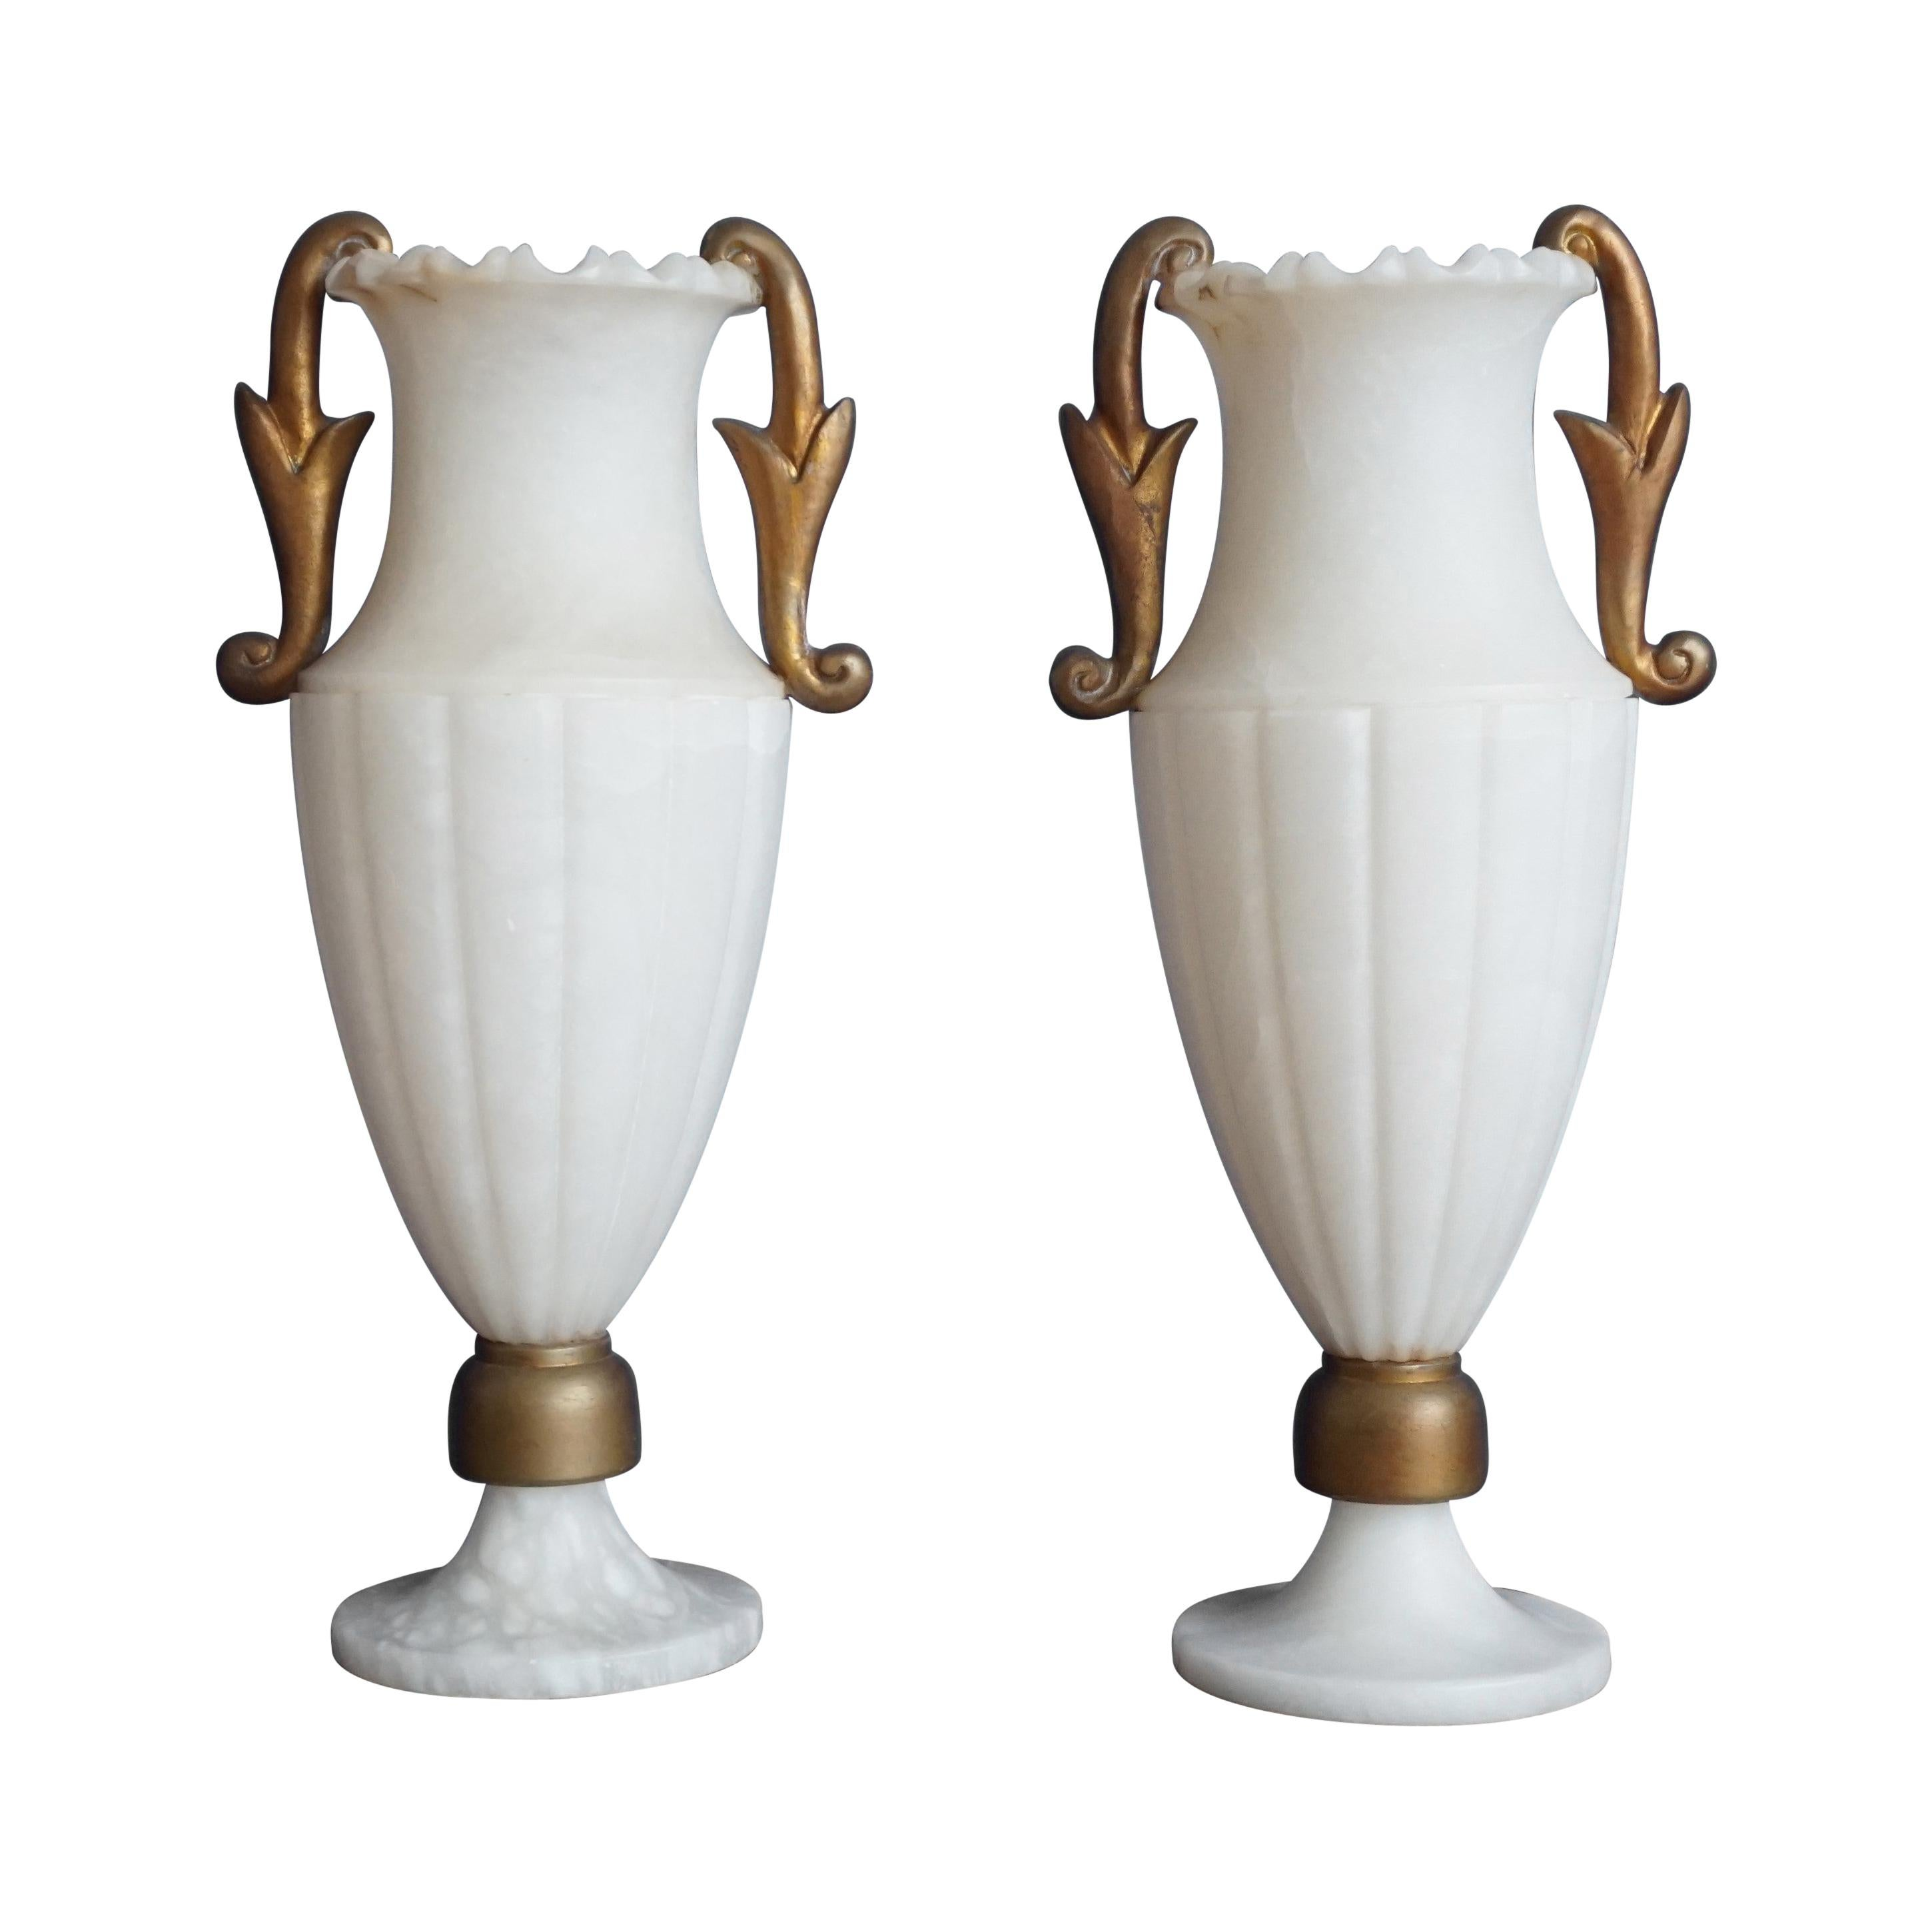 Rare & Large Pair of Hollywood Regency Handcrafted Alabaster Table Lamps, 1970s